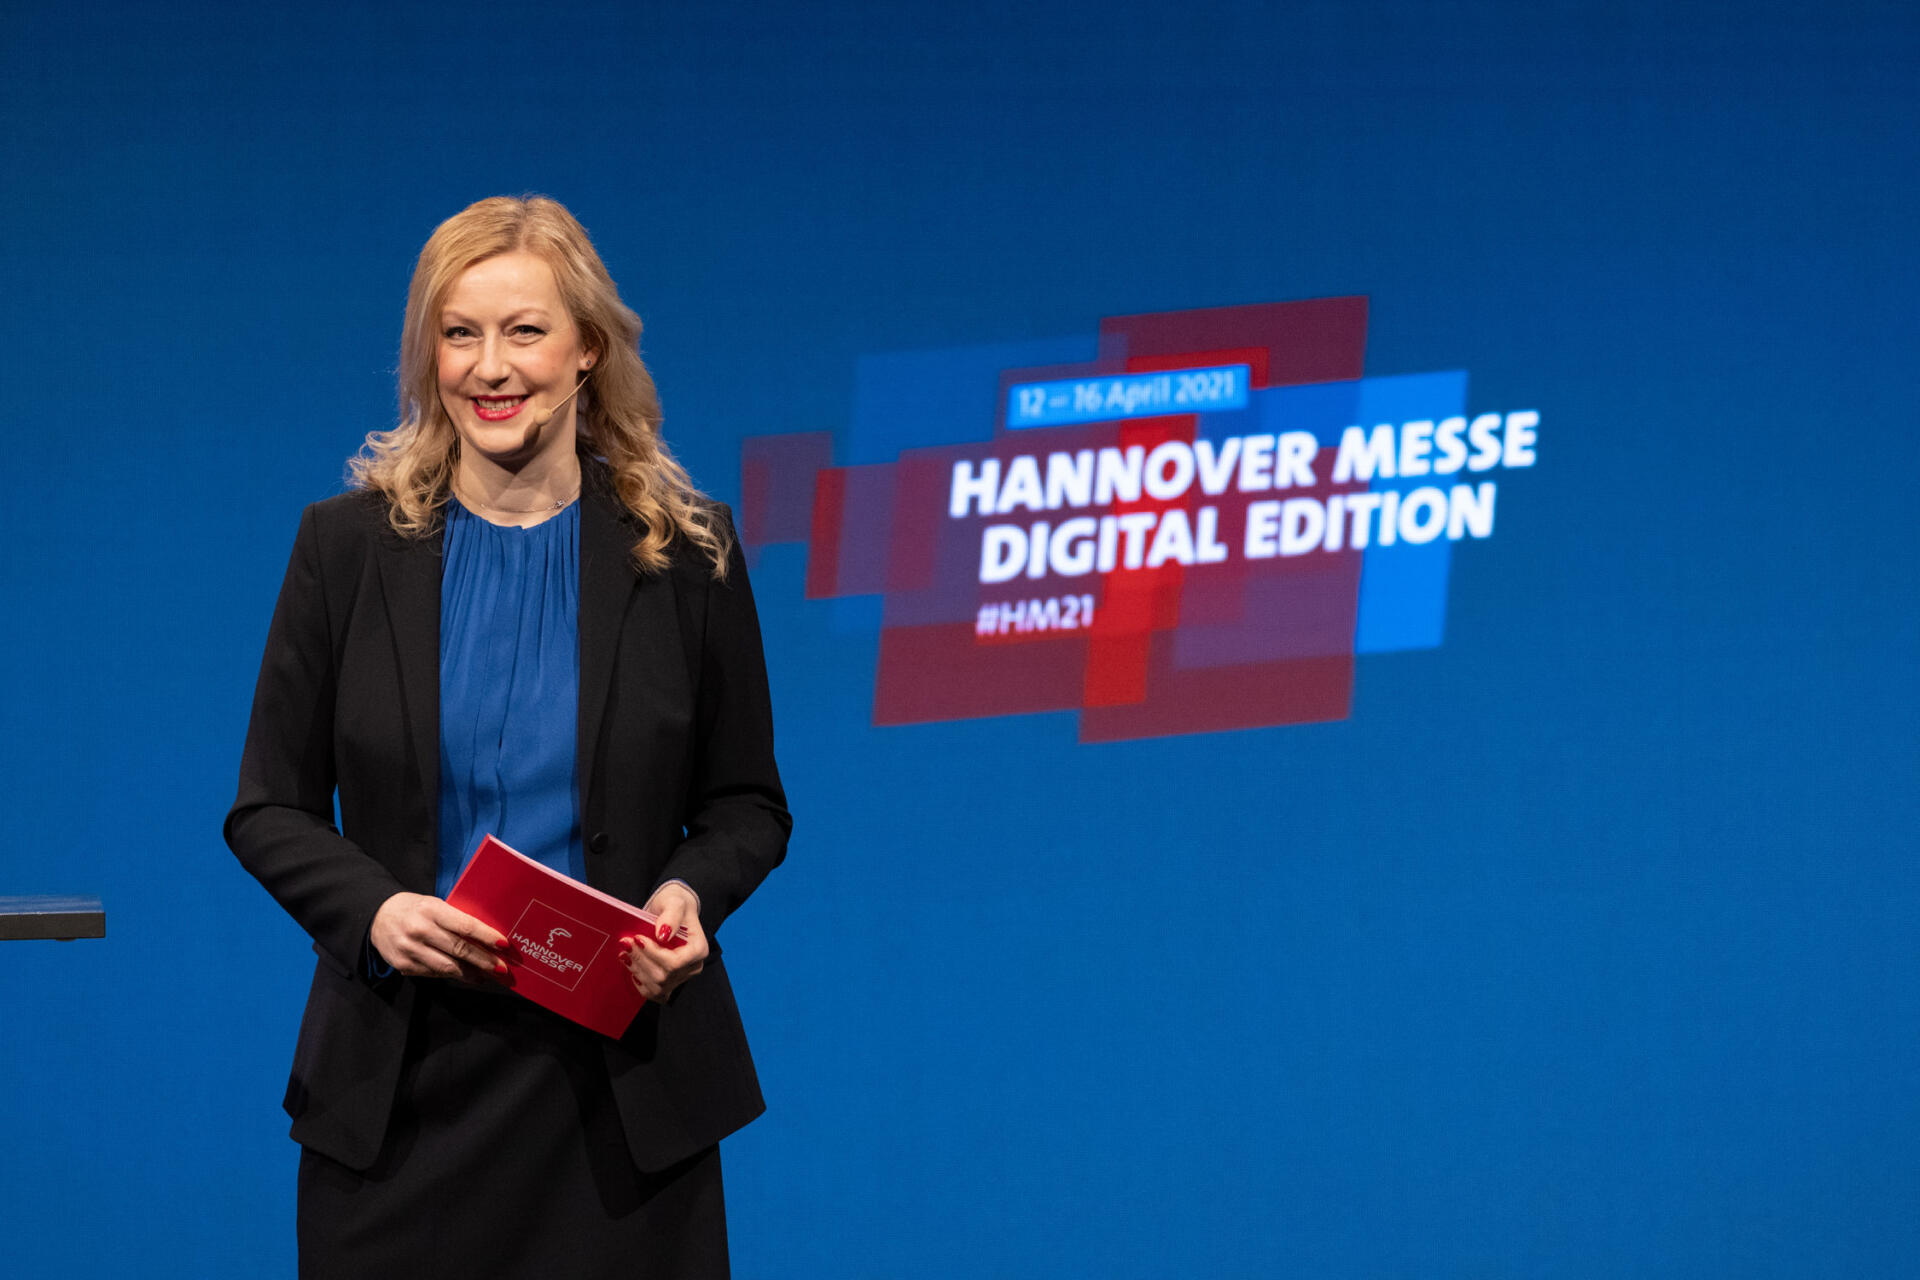 HANNOVER MESSE 2021